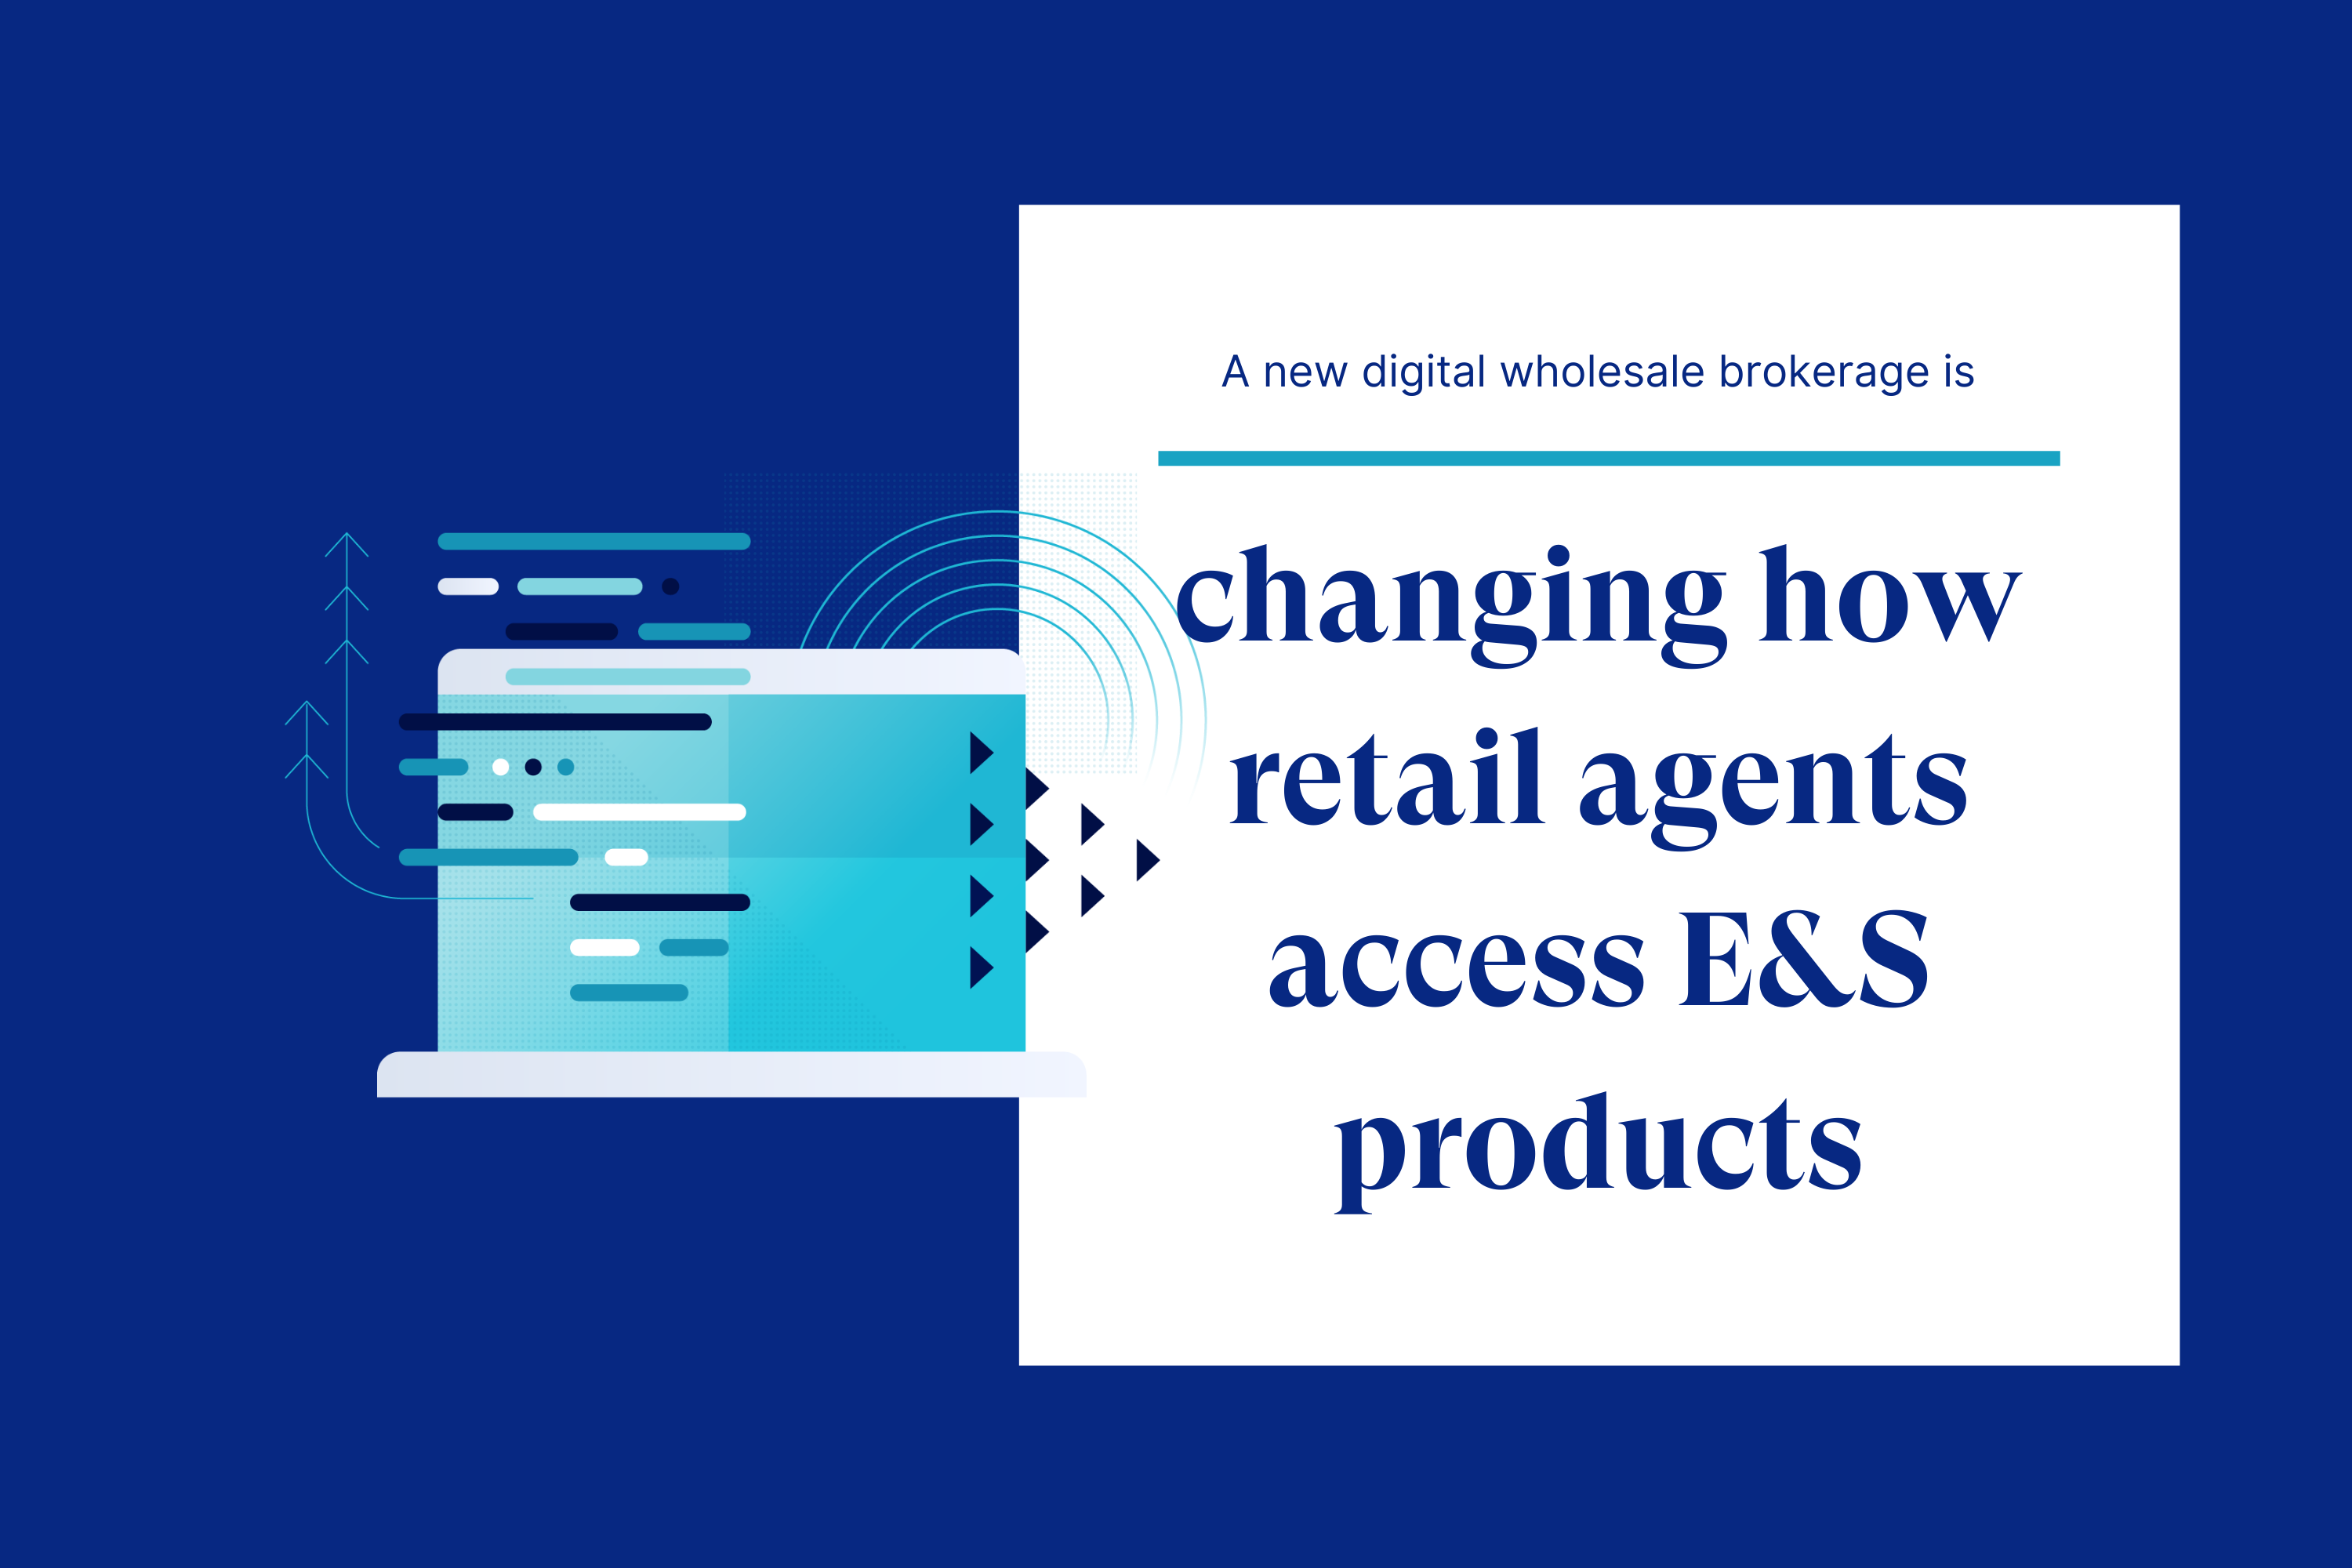 A new digital wholesale brokerage is changing how retail agents access E&S products